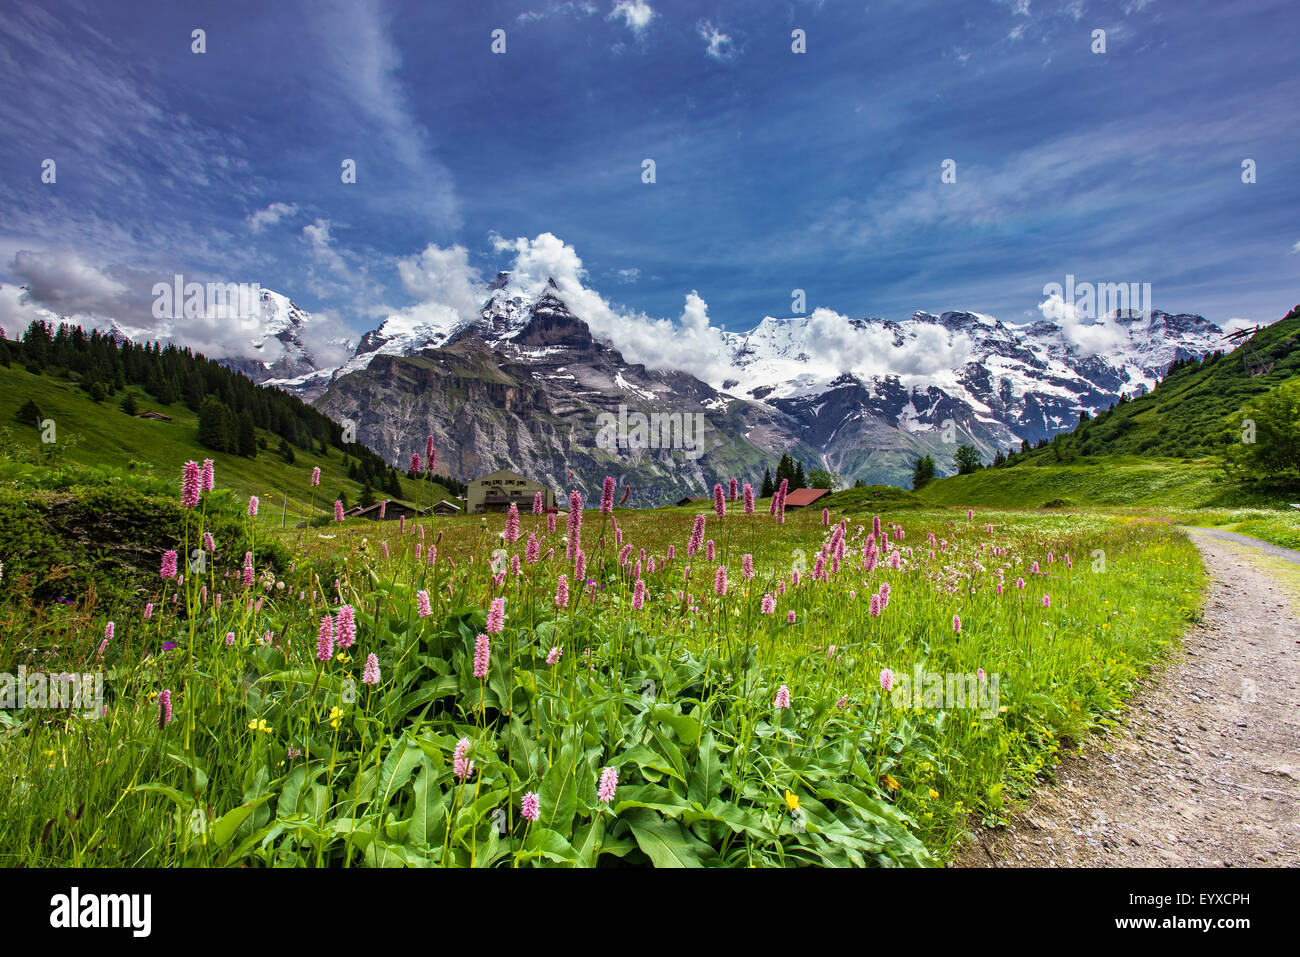 Swiss alpine meadows with mountain backdrop - Stock Image